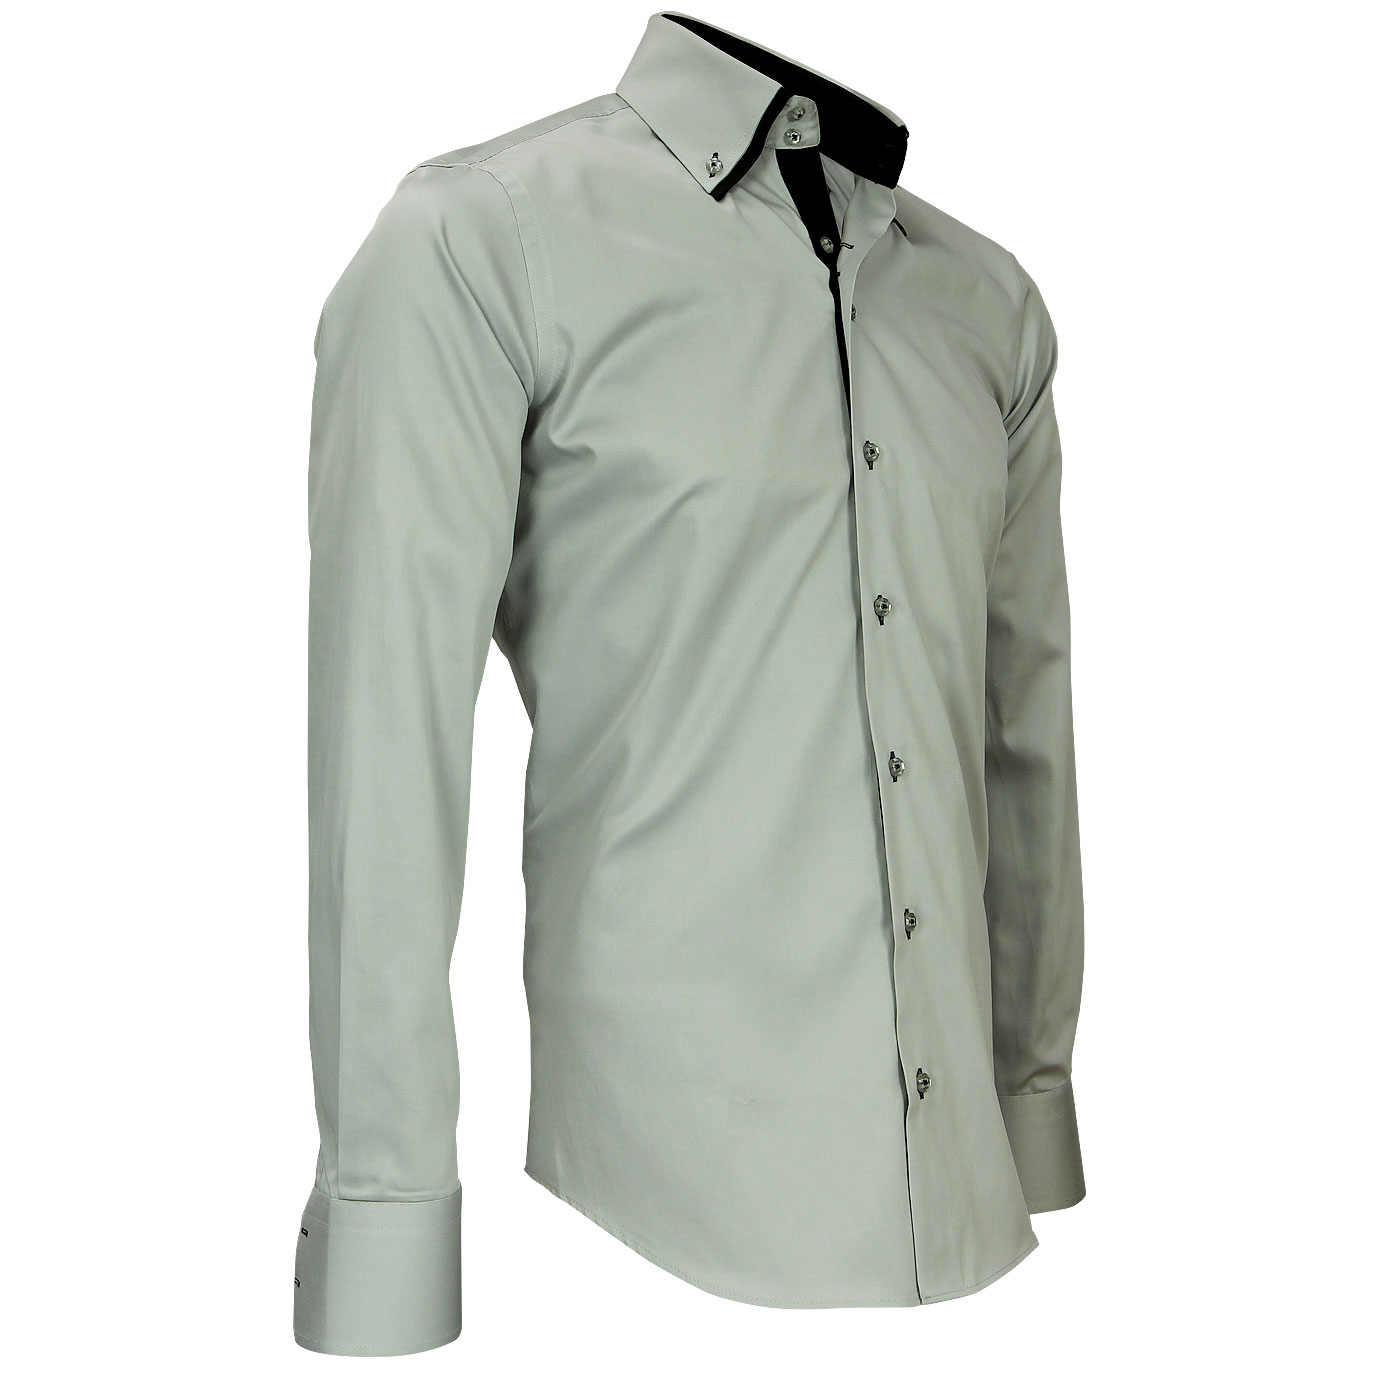 Double Collar  Shirts: Fashion spirit by Webmenshirt